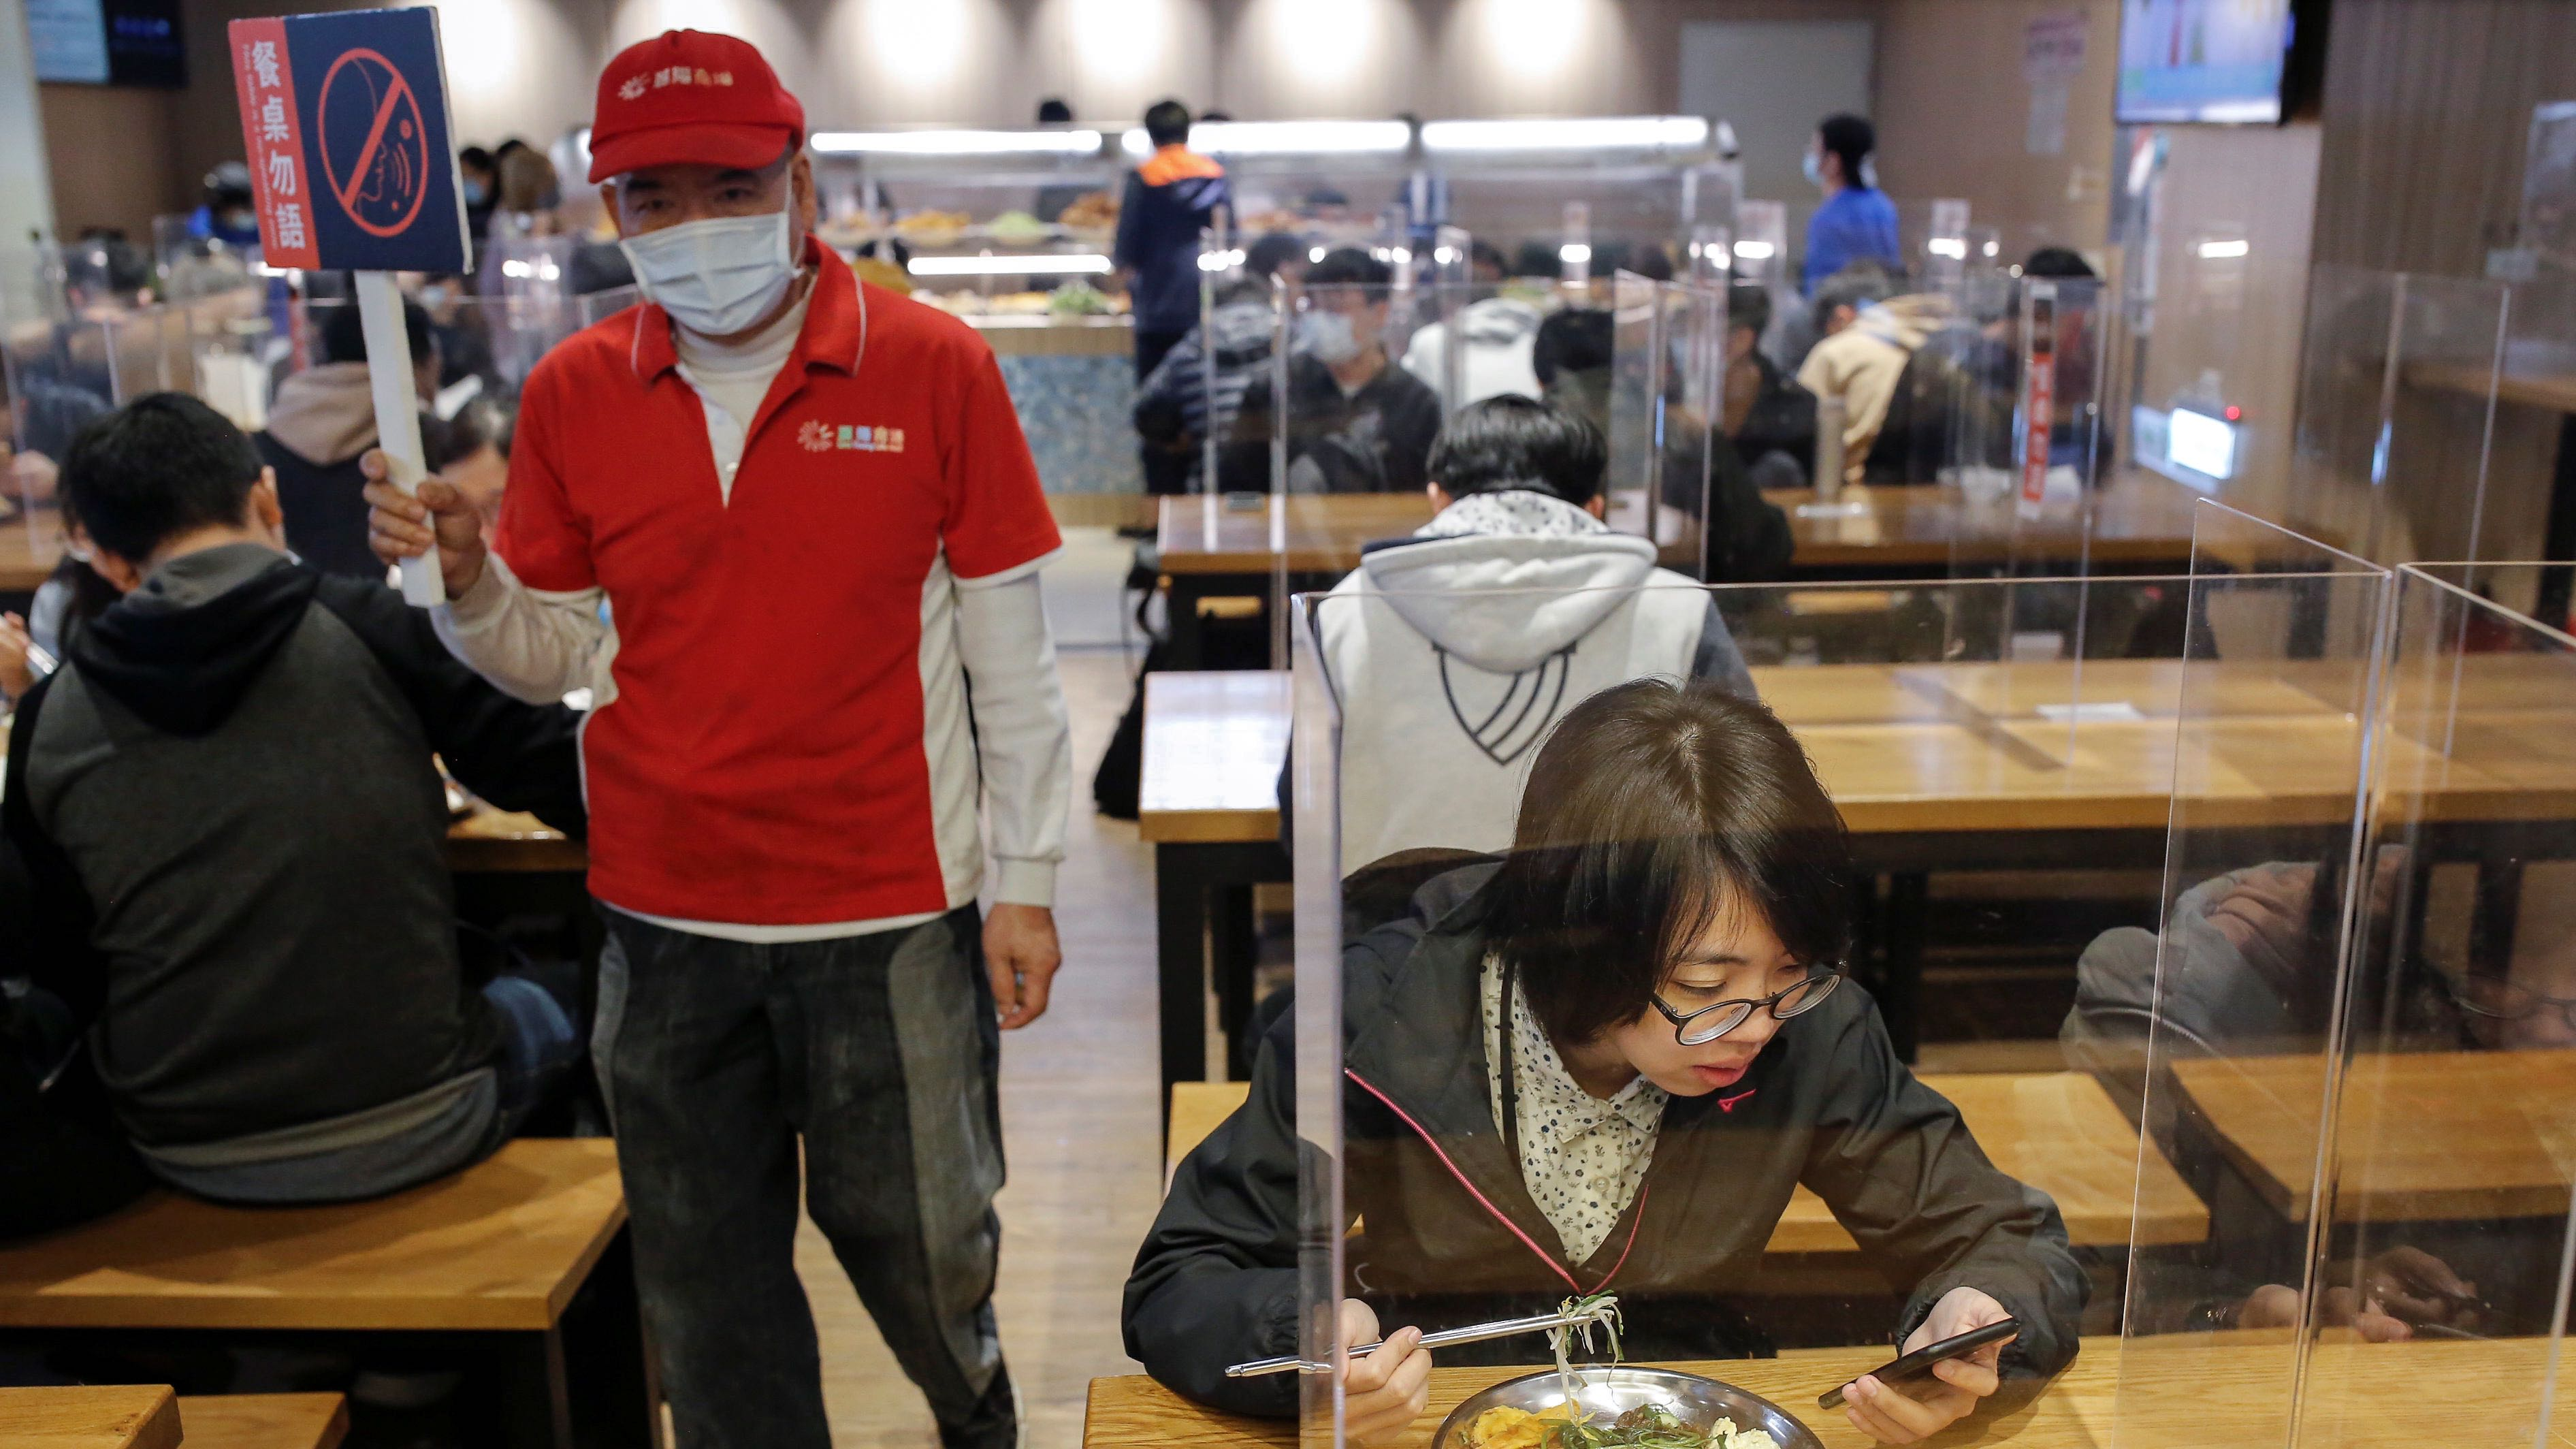 Students eat lunch between dividers to protect them from the coronavirus disease (COVID-19) in the canteen of the NationalTaiwanUniversity of Science and Technology (NTUST) in Taipei,Taiwan, April 6, 2020.